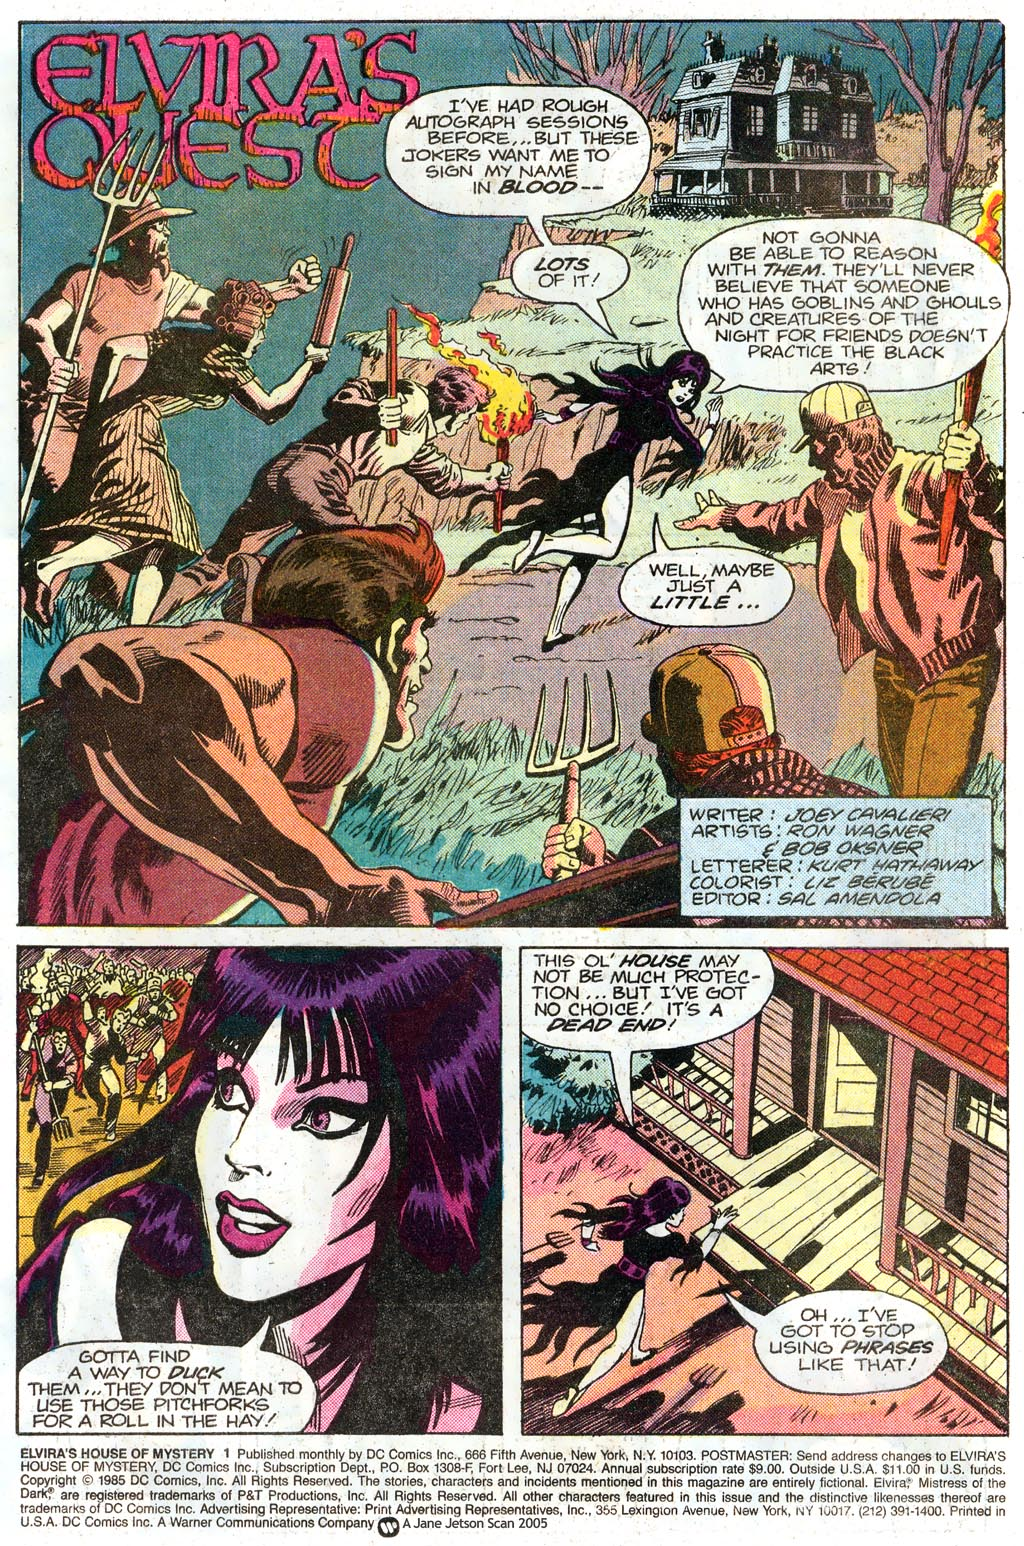 Elvira's House of Mystery (1985) #1 pg1, penciled by Ron Wagner, inked by Bob Oksner, & colored by Liz Berube.